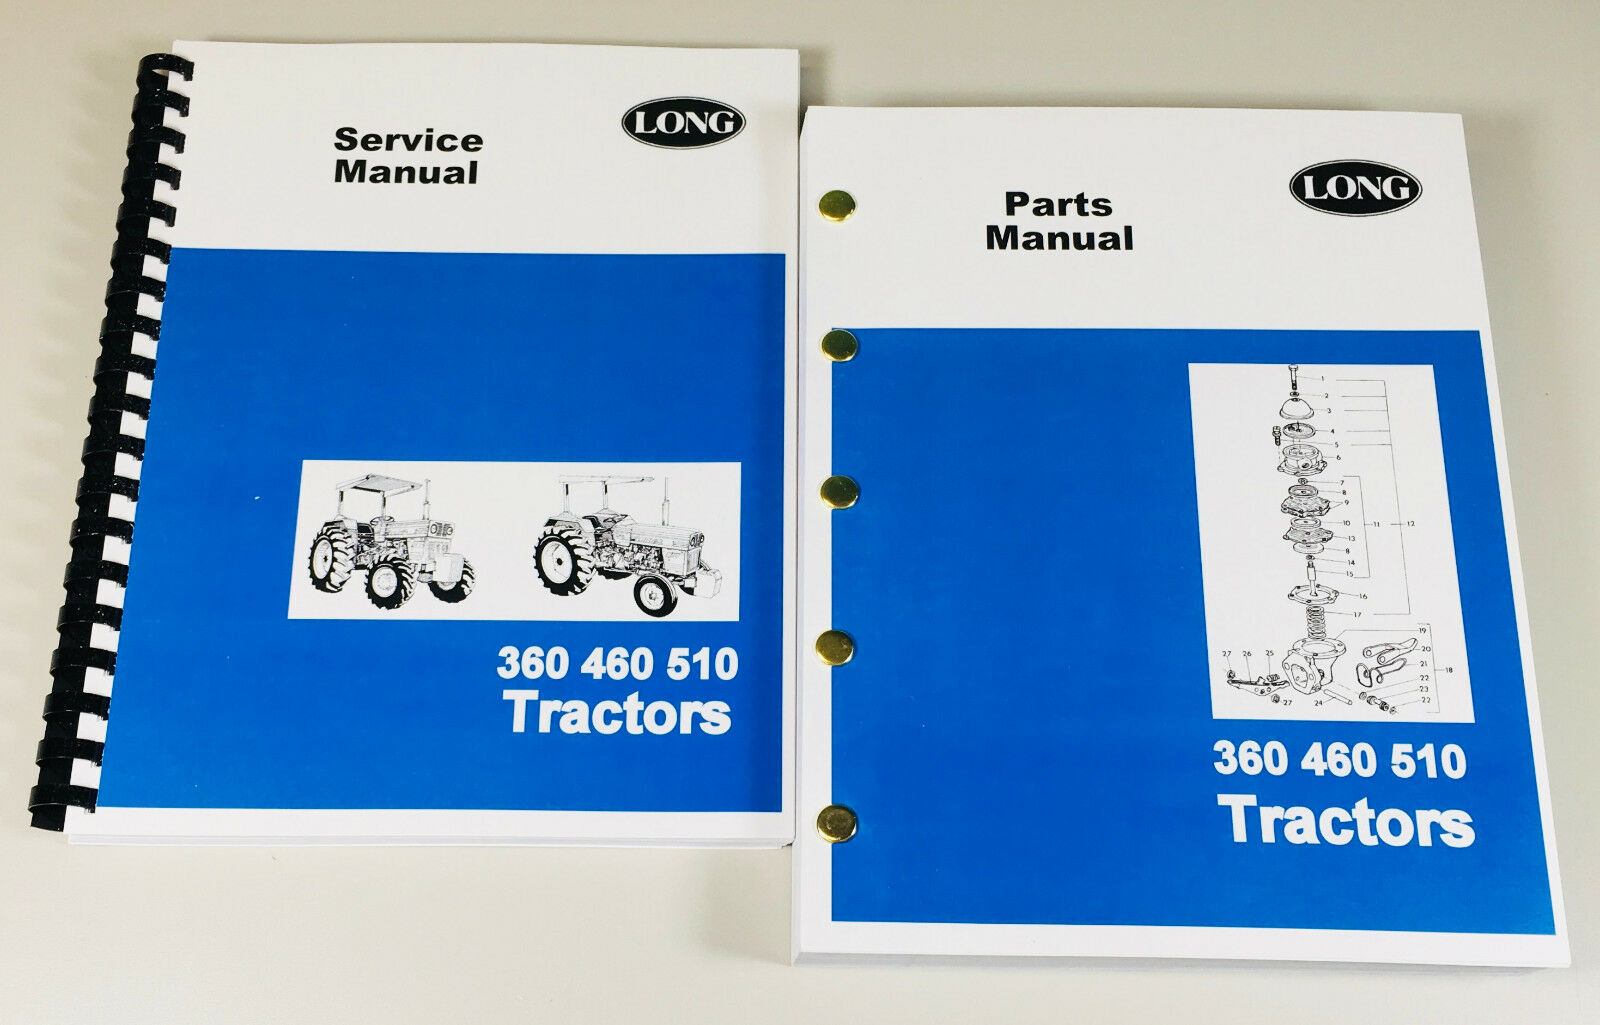 Long 360 460 510 Tractor Service Repair Shop Manual Parts Catalog Technical  Book 1 of 12FREE Shipping ...